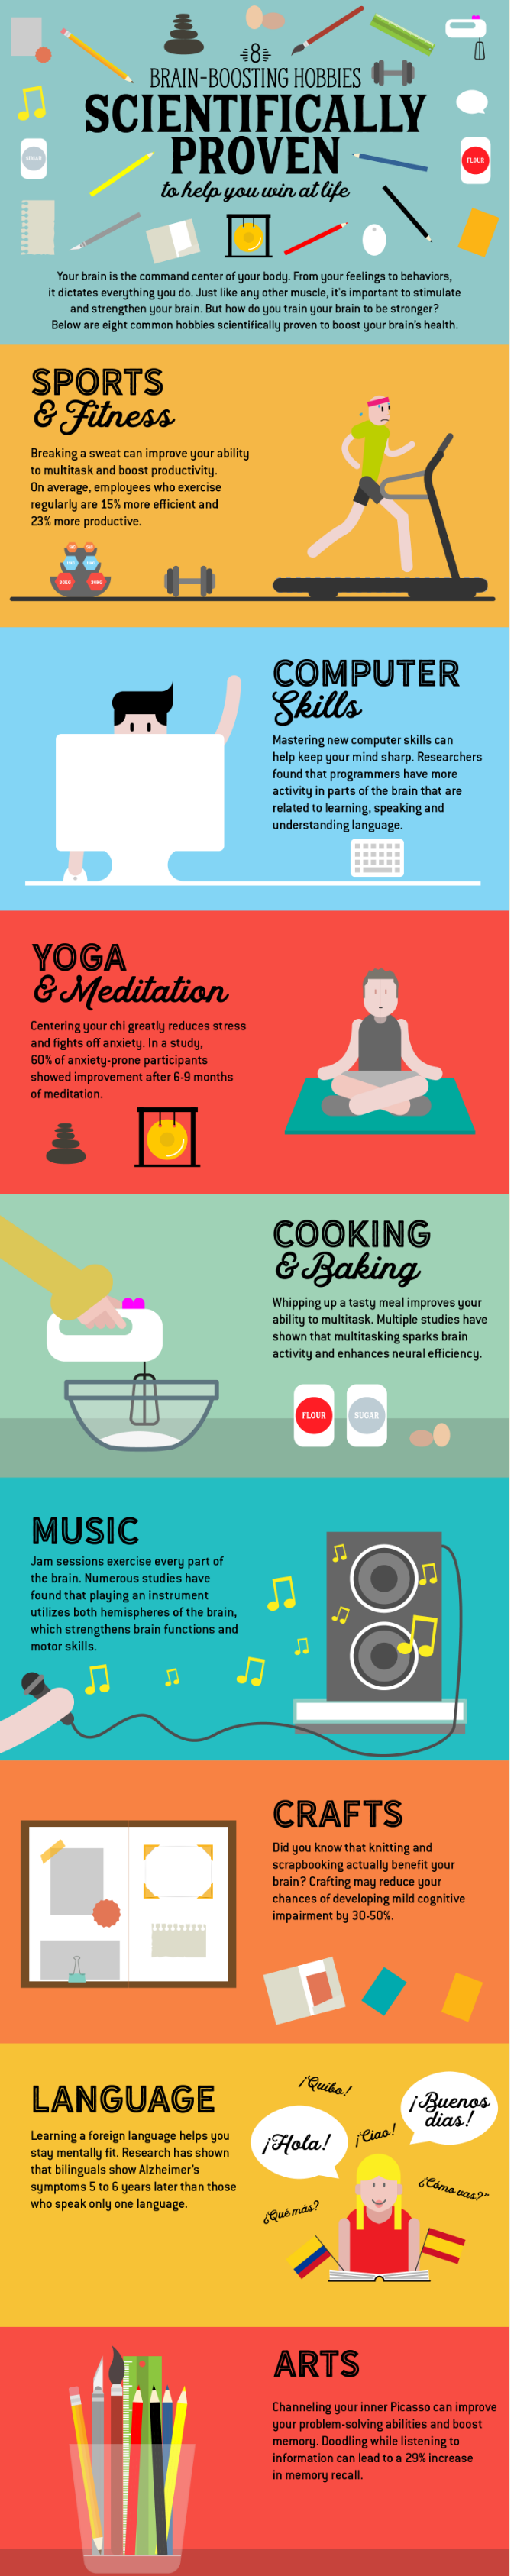 8 Brain Boosting Hobbies to Help You Win at Life  Infographic    Smart.Study Blog